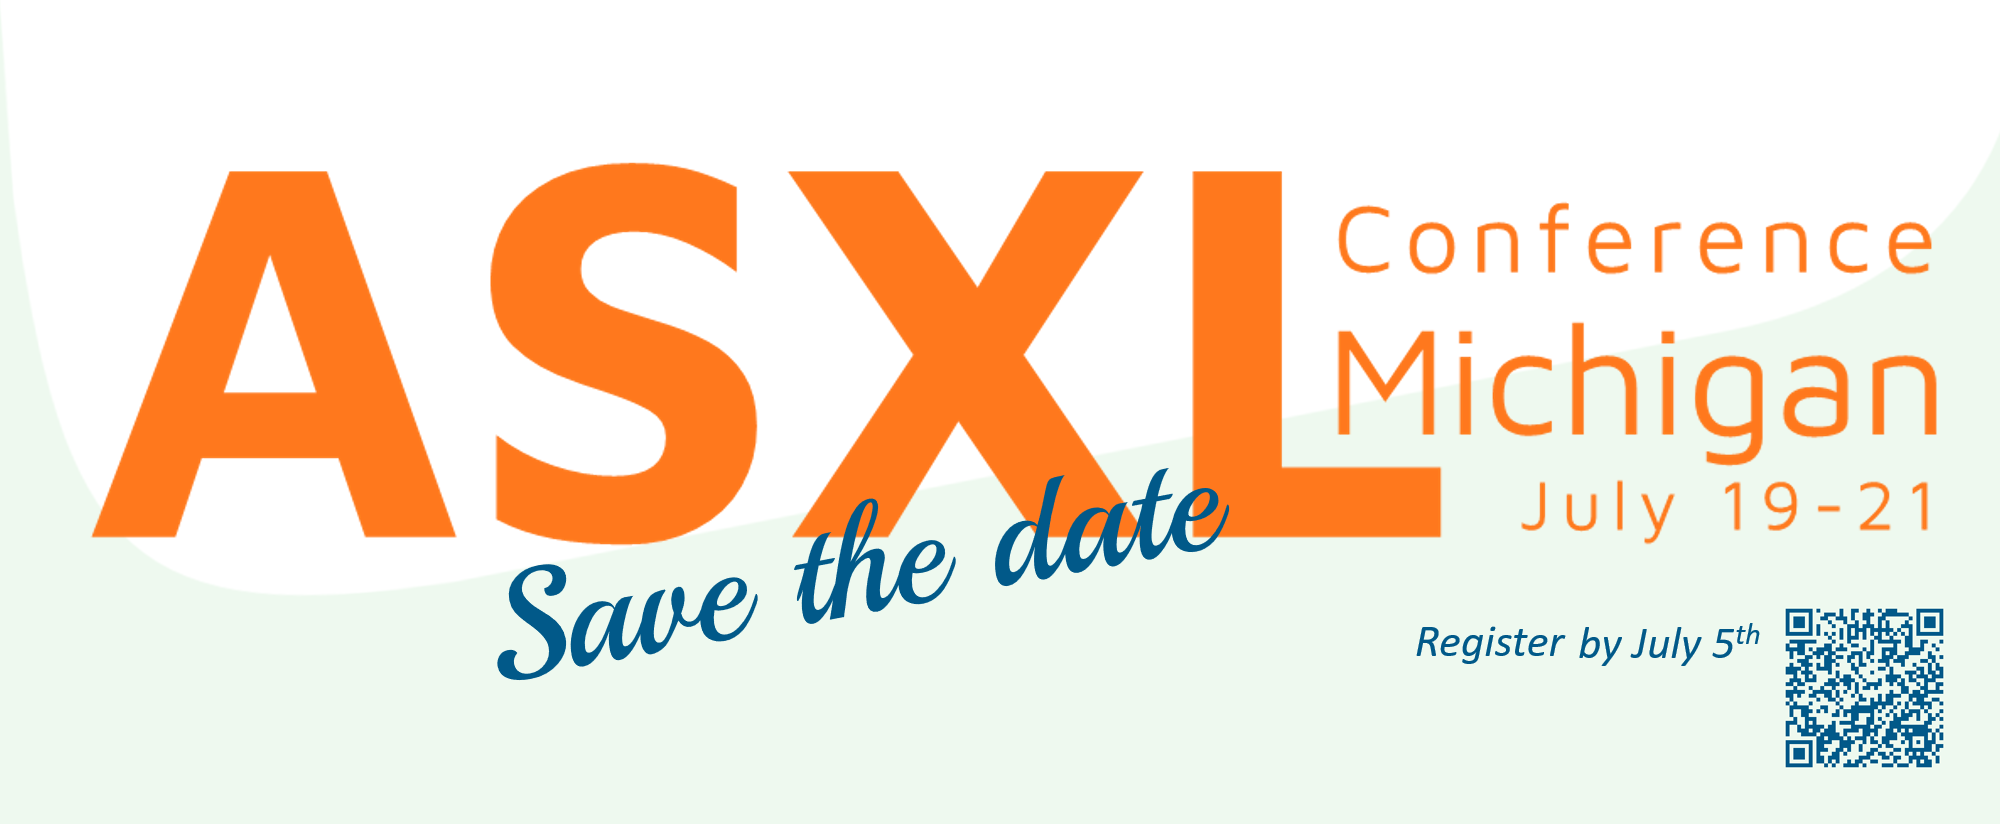 ASXL conference bannerwebsite.png